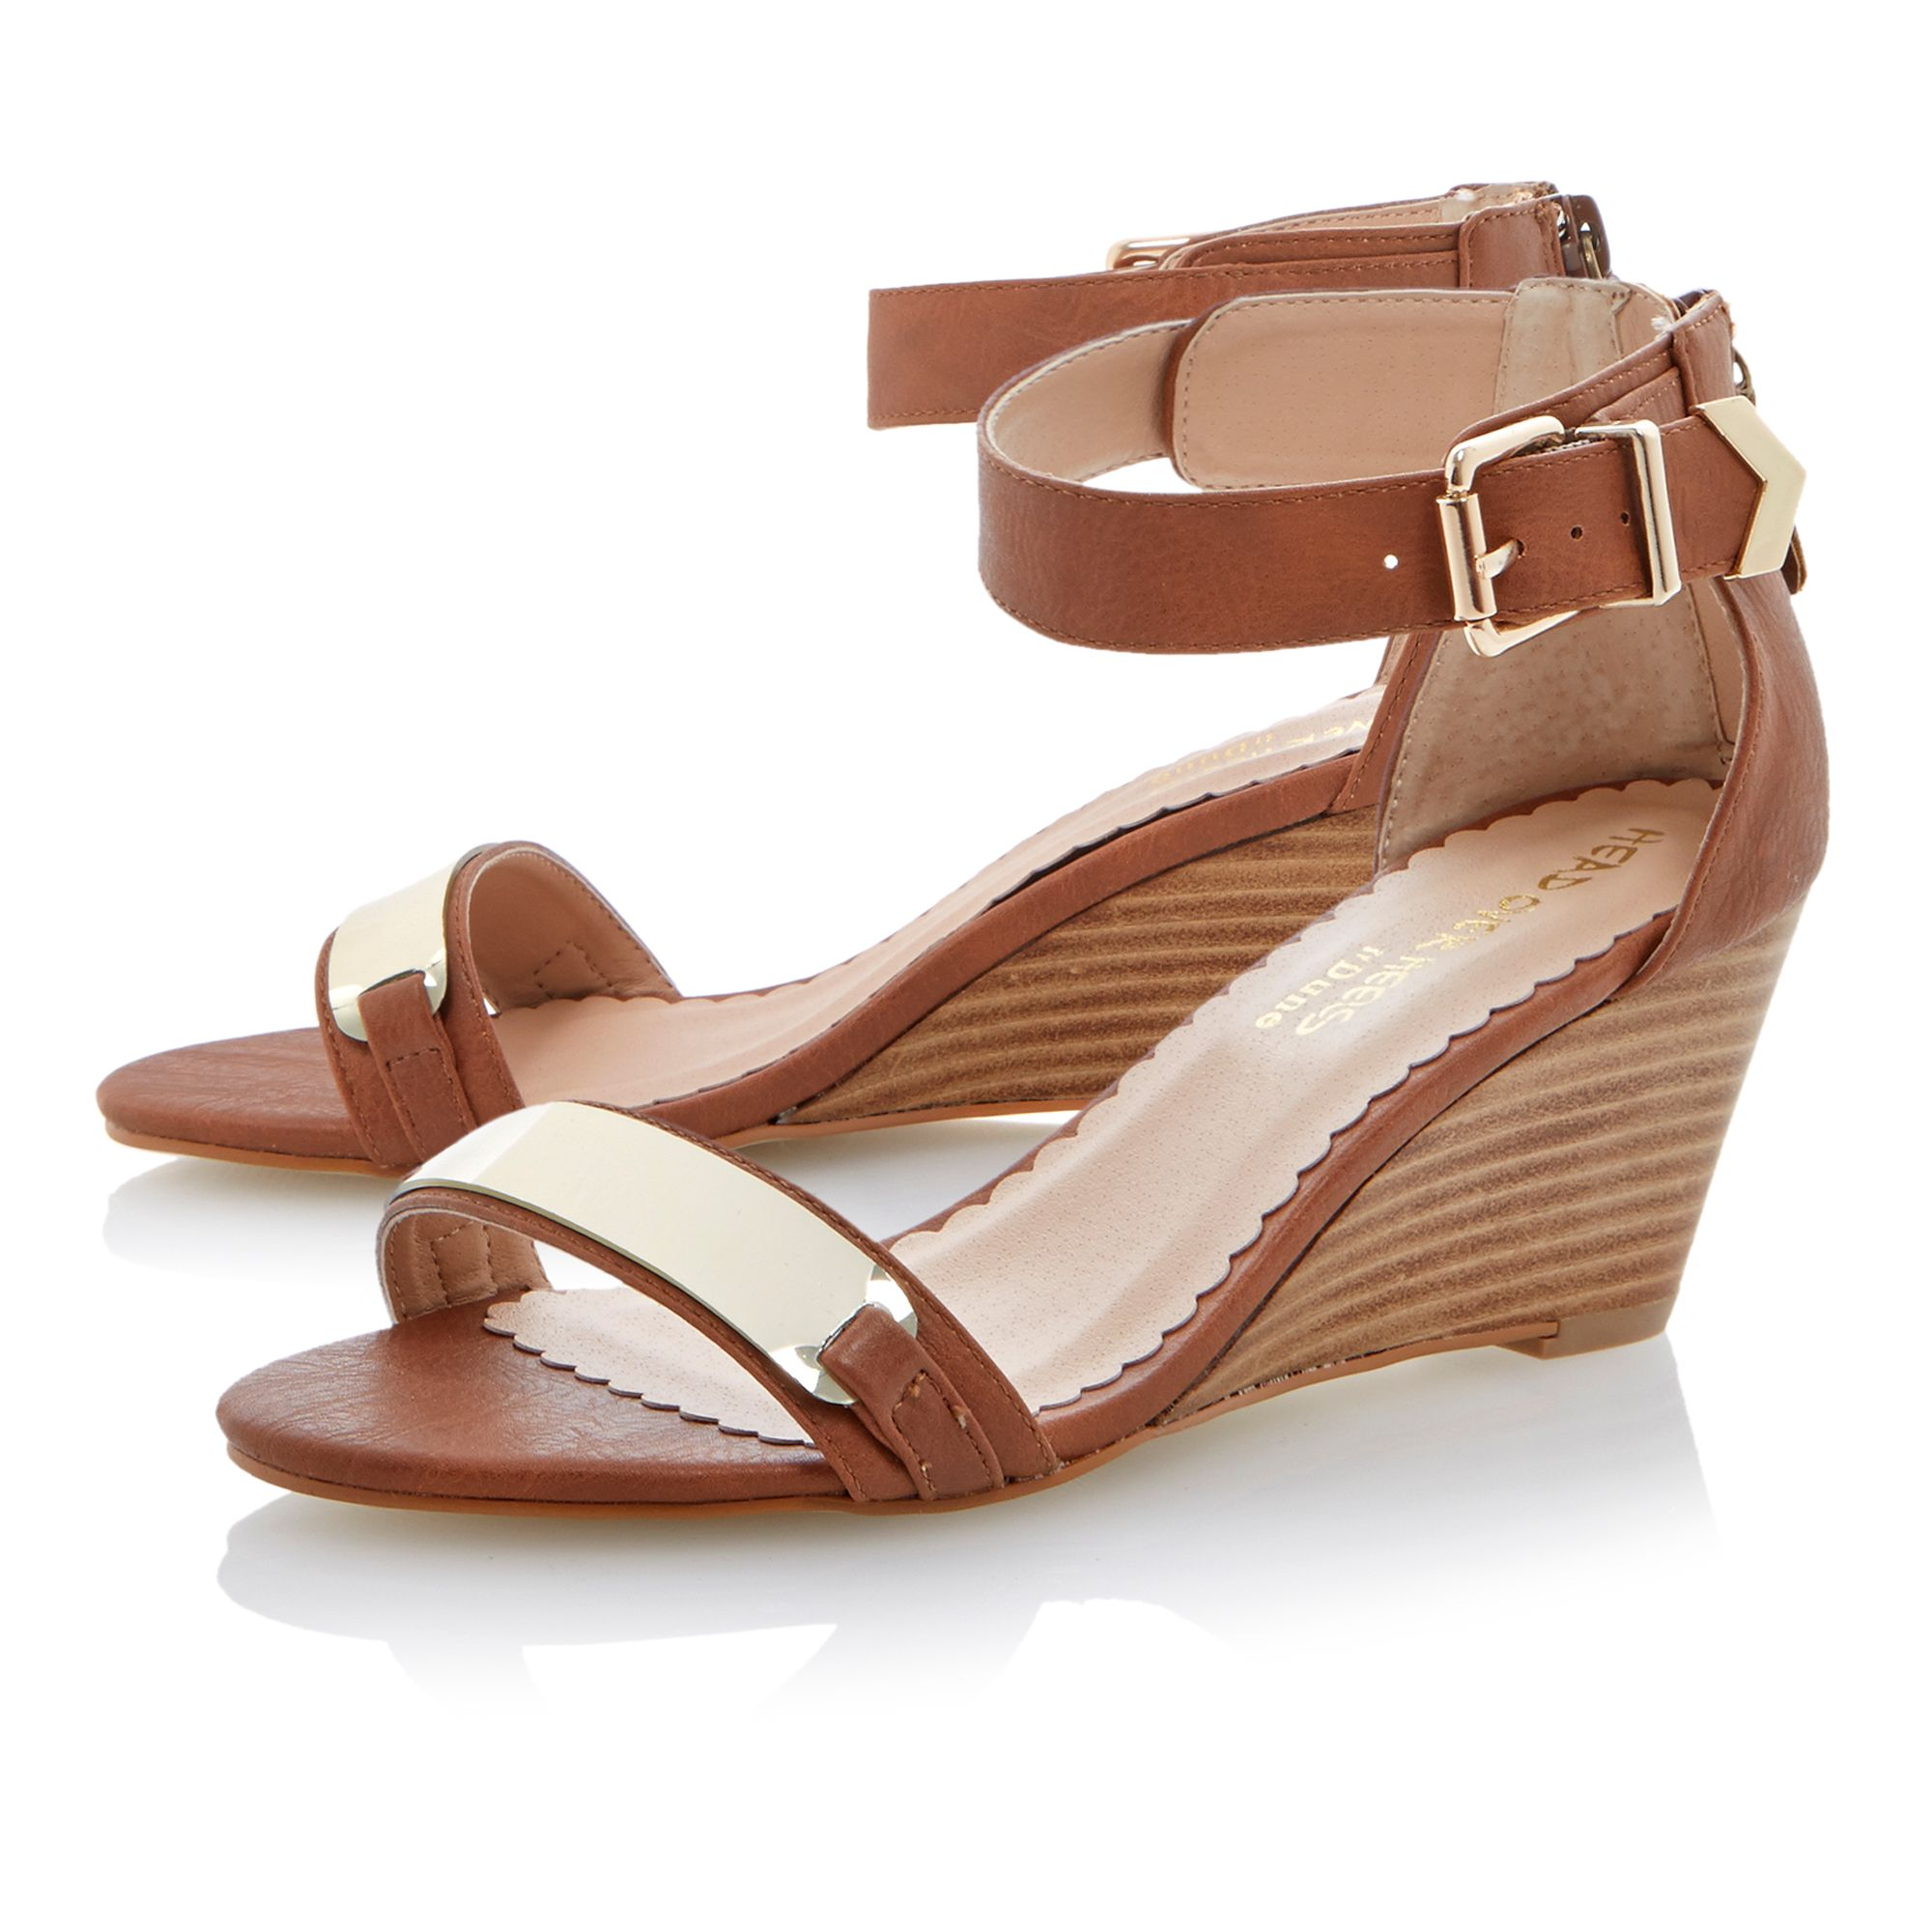 Genee wedge buckle sandals